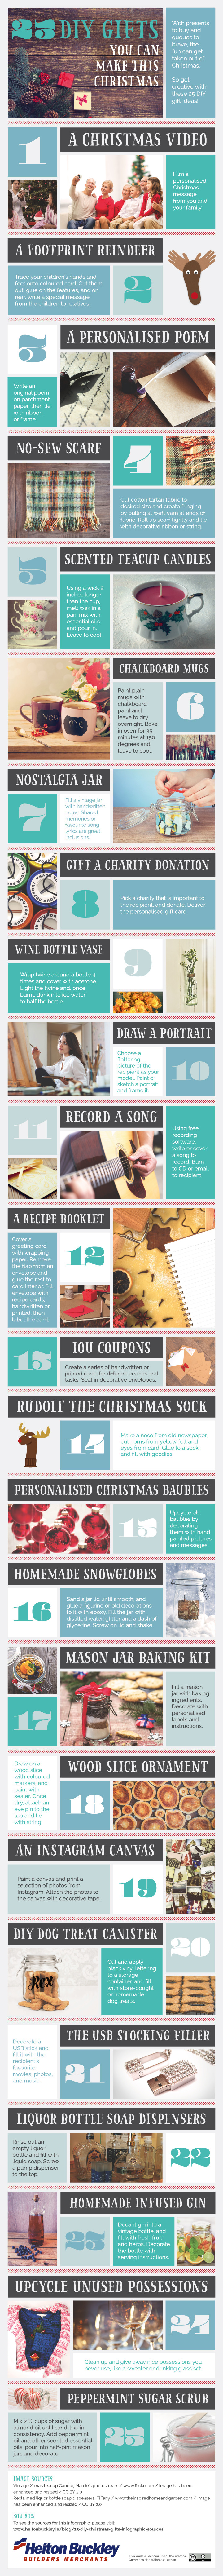 25 DIY Christmas Gift Ideas You Must Try This Time